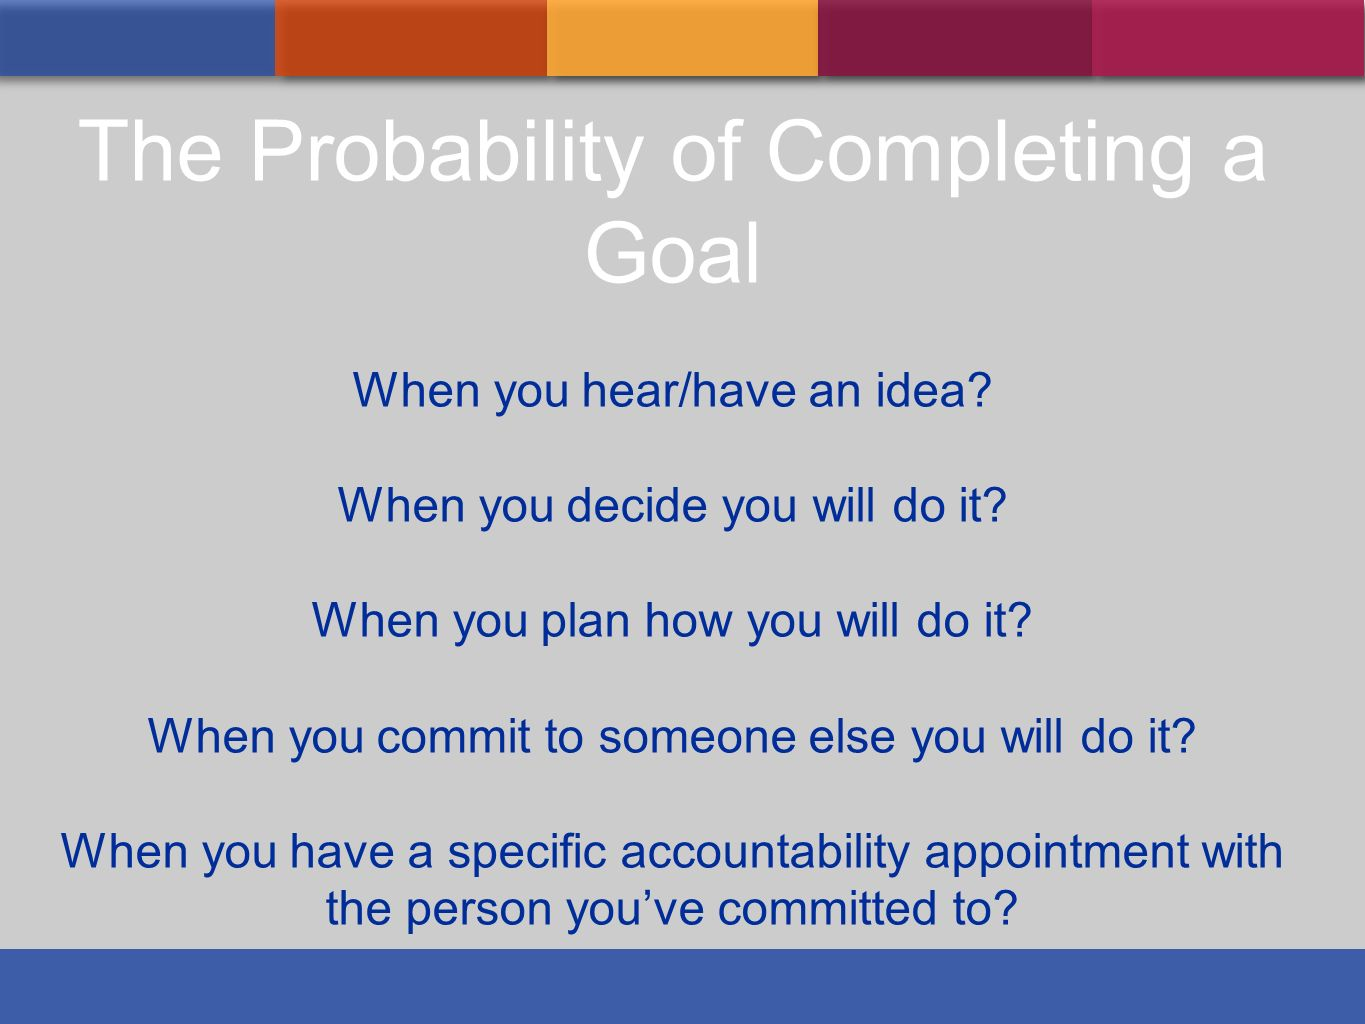 The Probability of Completing a Goal